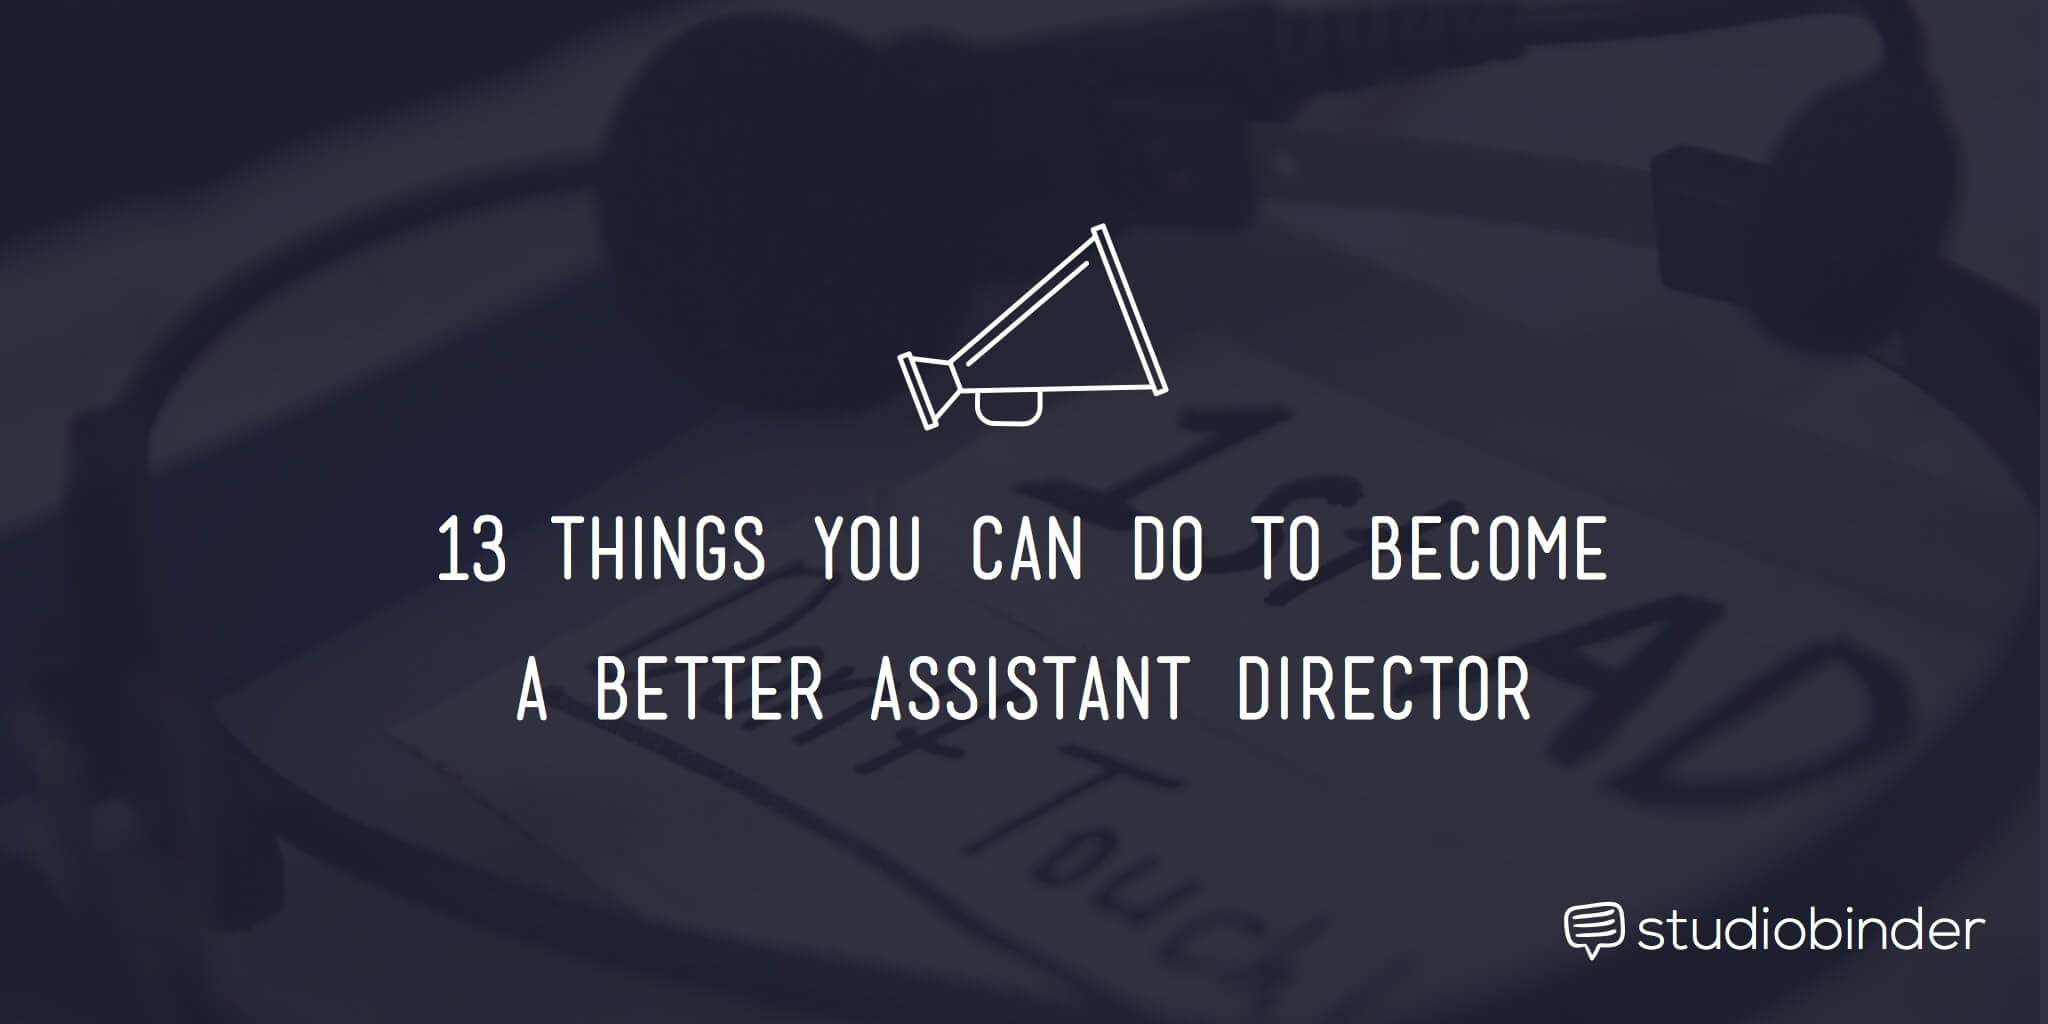 13-things-you-can-do-to-become-a-better-assistant-director